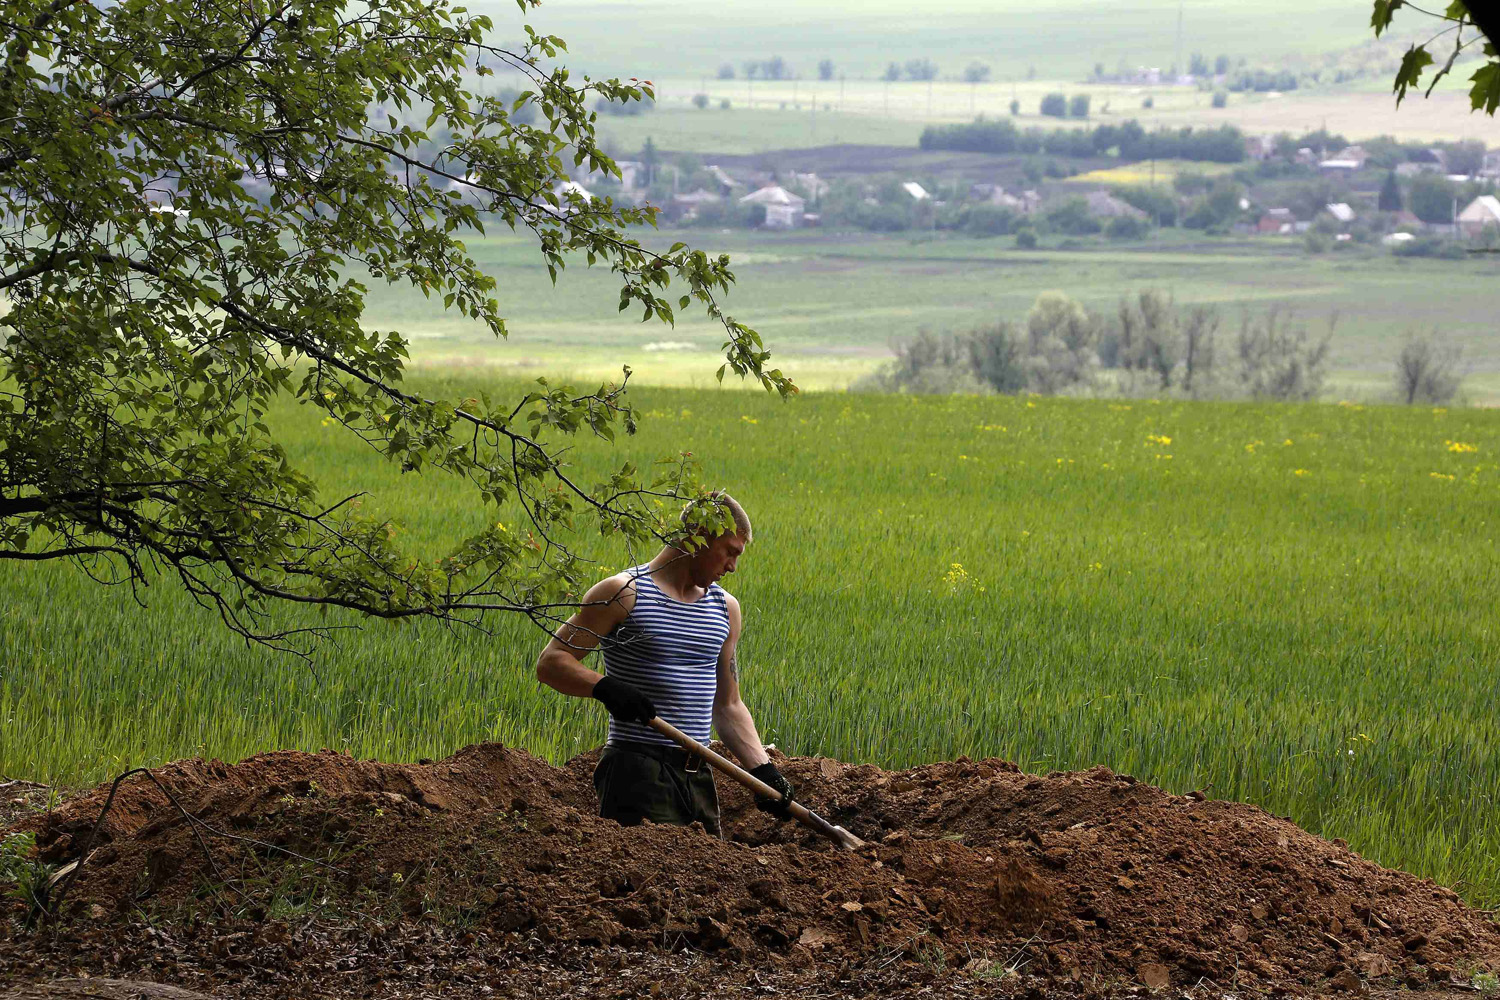 May 15, 2014. A Ukrainian soldier digs a trench outside Bylbasivka.